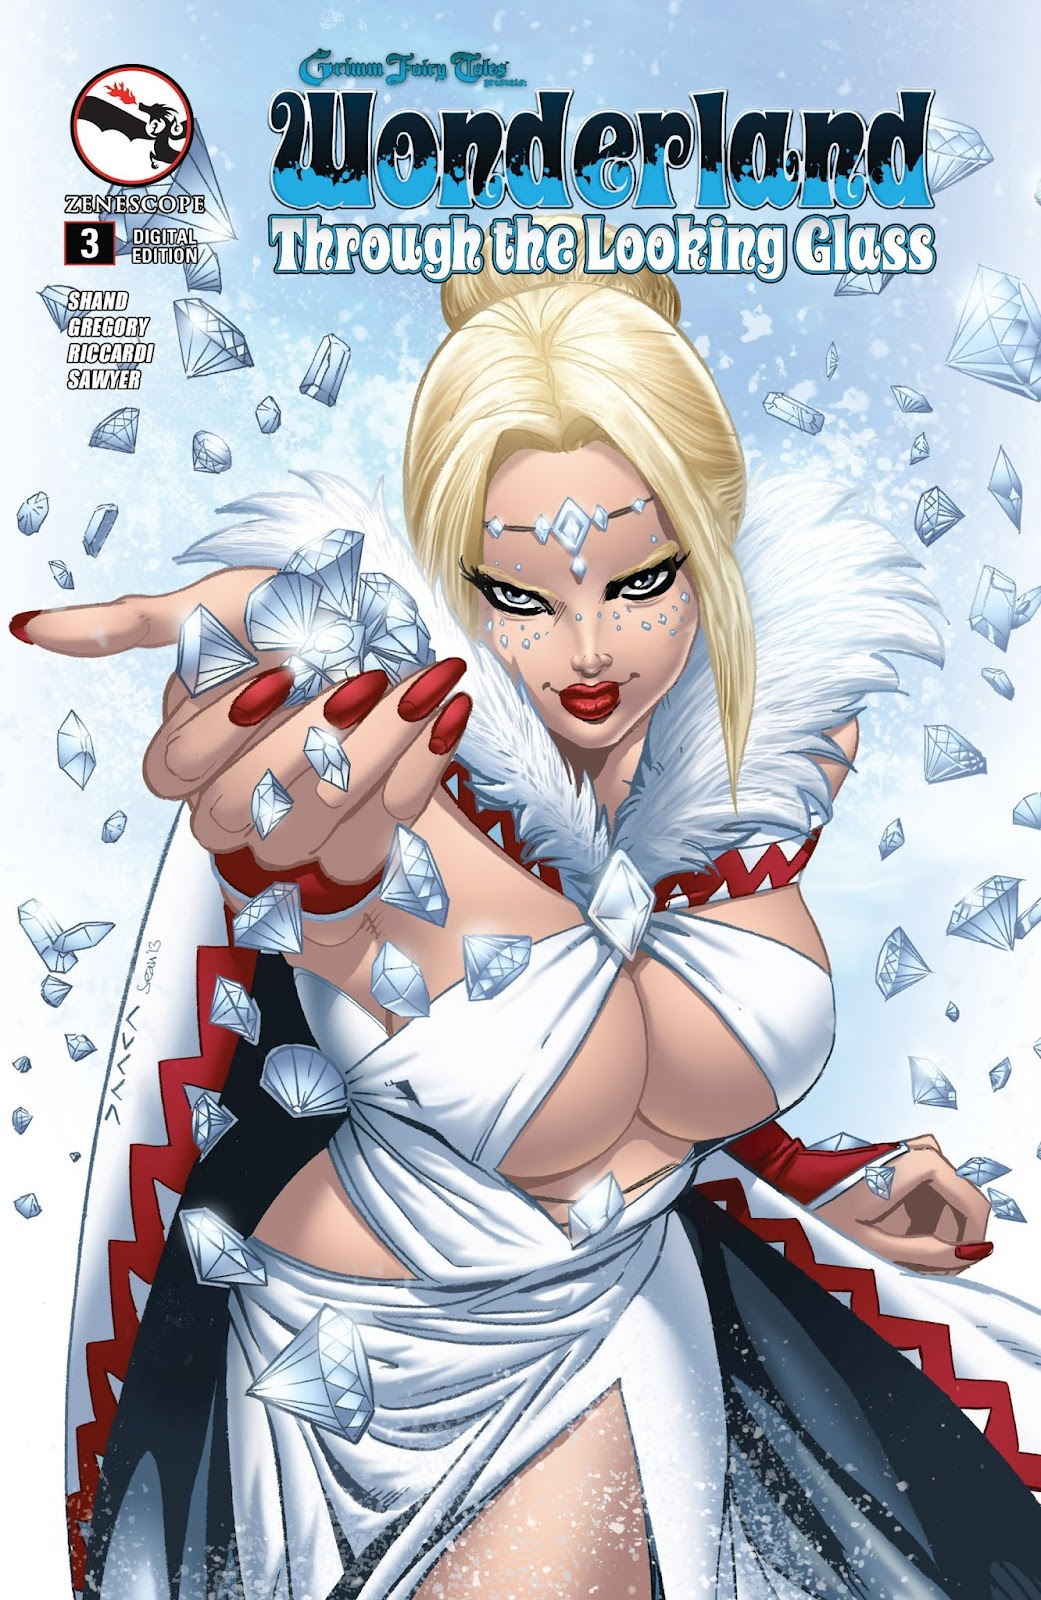 Cover C Grimm Fairy Tales Presents Wonderland Through the Looking Glass 2